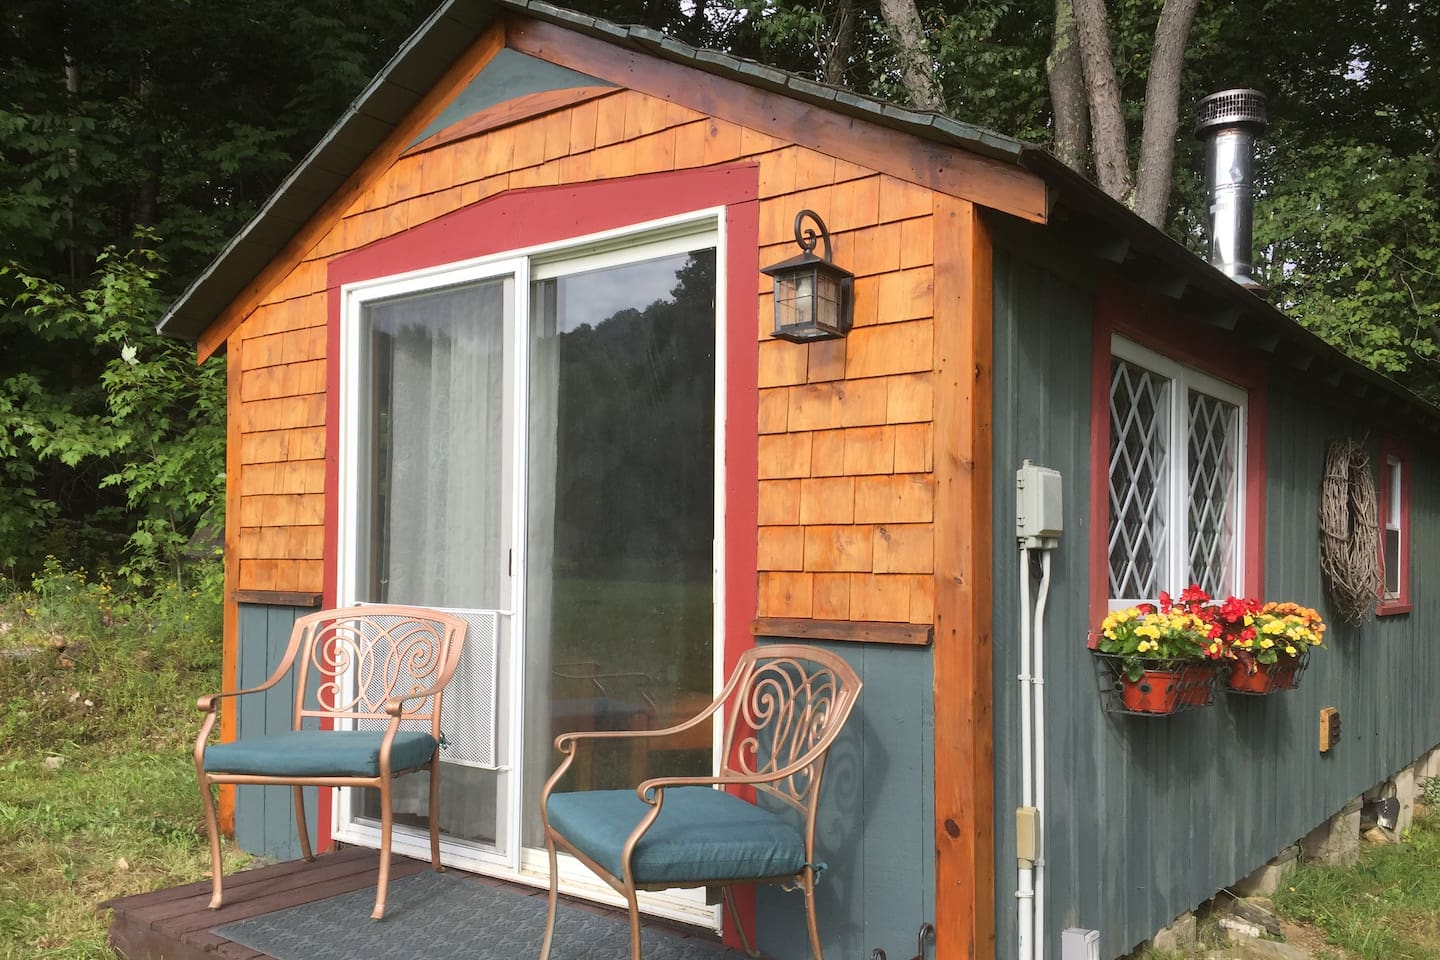 Get up close, peaceful and personal with nature in the comfort of your own private and charming cabin looking out onto green Vermont pasture.